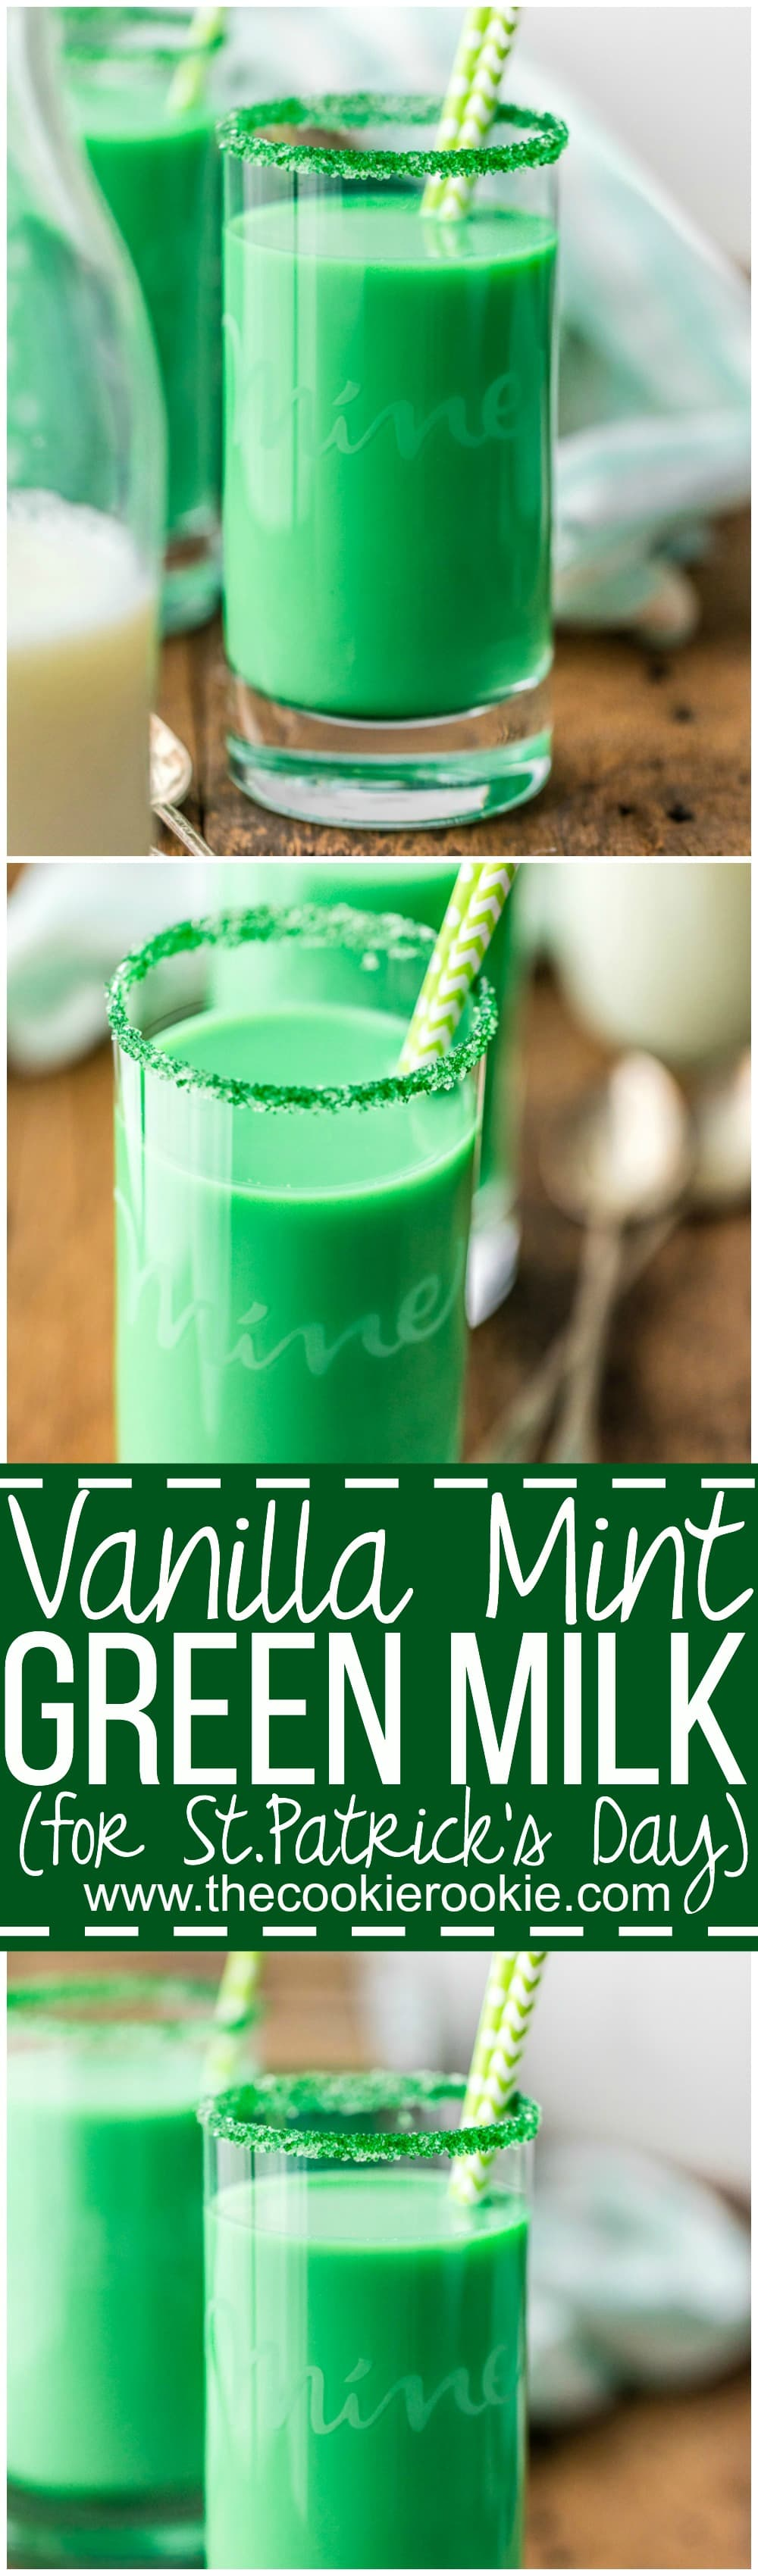 Make the kids extra happy on St. Patrick's Day with Vanilla Mint Green Milk! We make Leprechaun Milk every St Patricks Day! So fun and tasty too. Vanilla Mint Milk for the win!